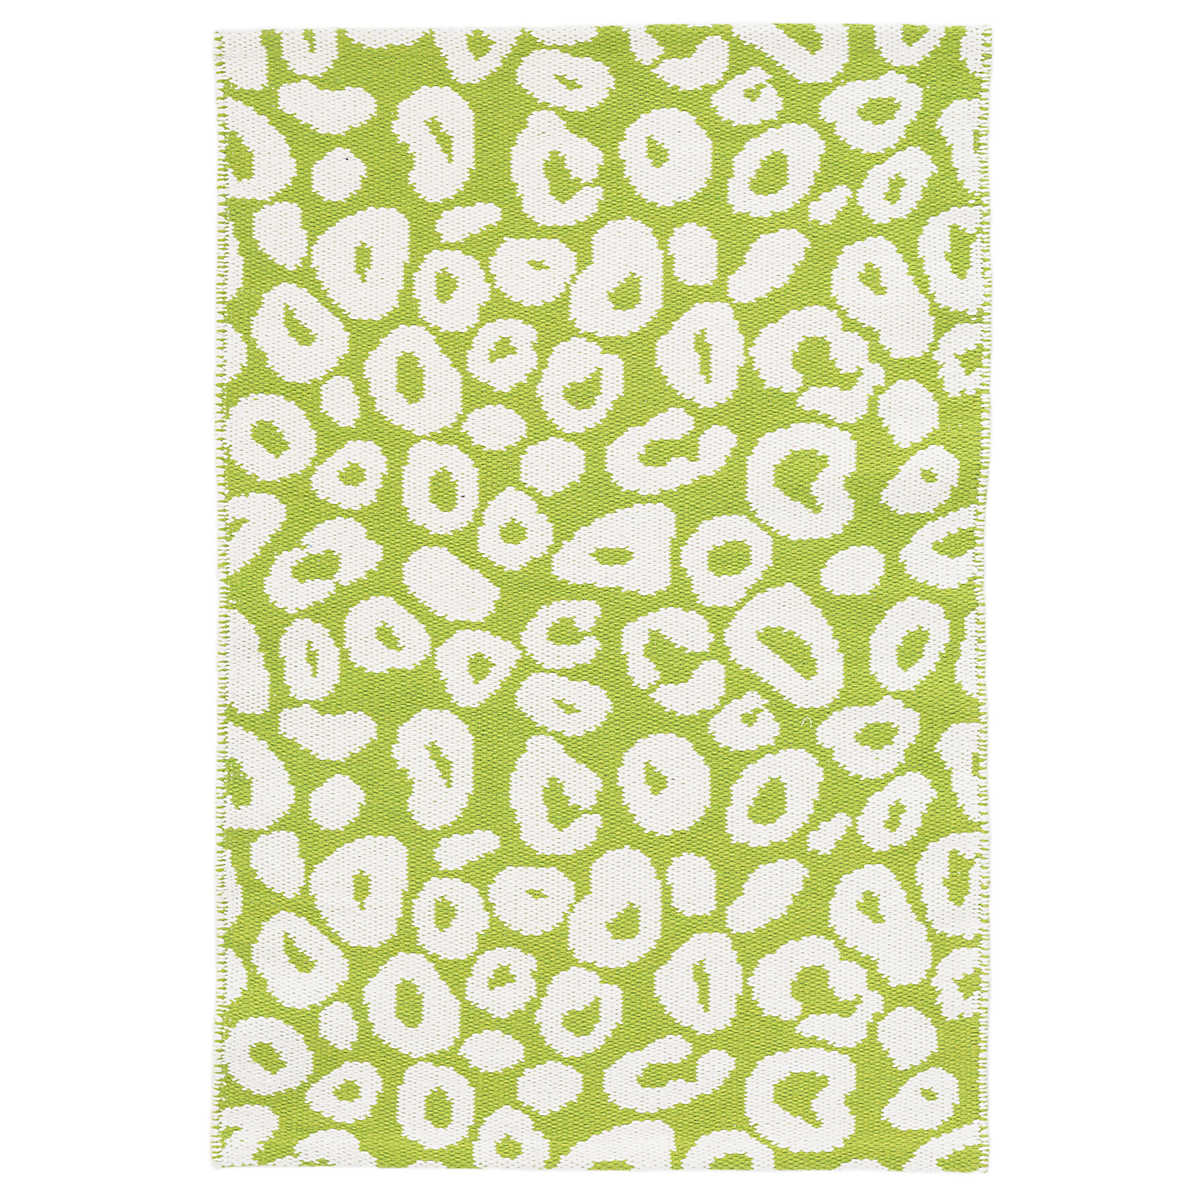 Gypsy Stripe Turquoise Grey Woven Cotton Rug: Spot Green Woven Cotton Rug